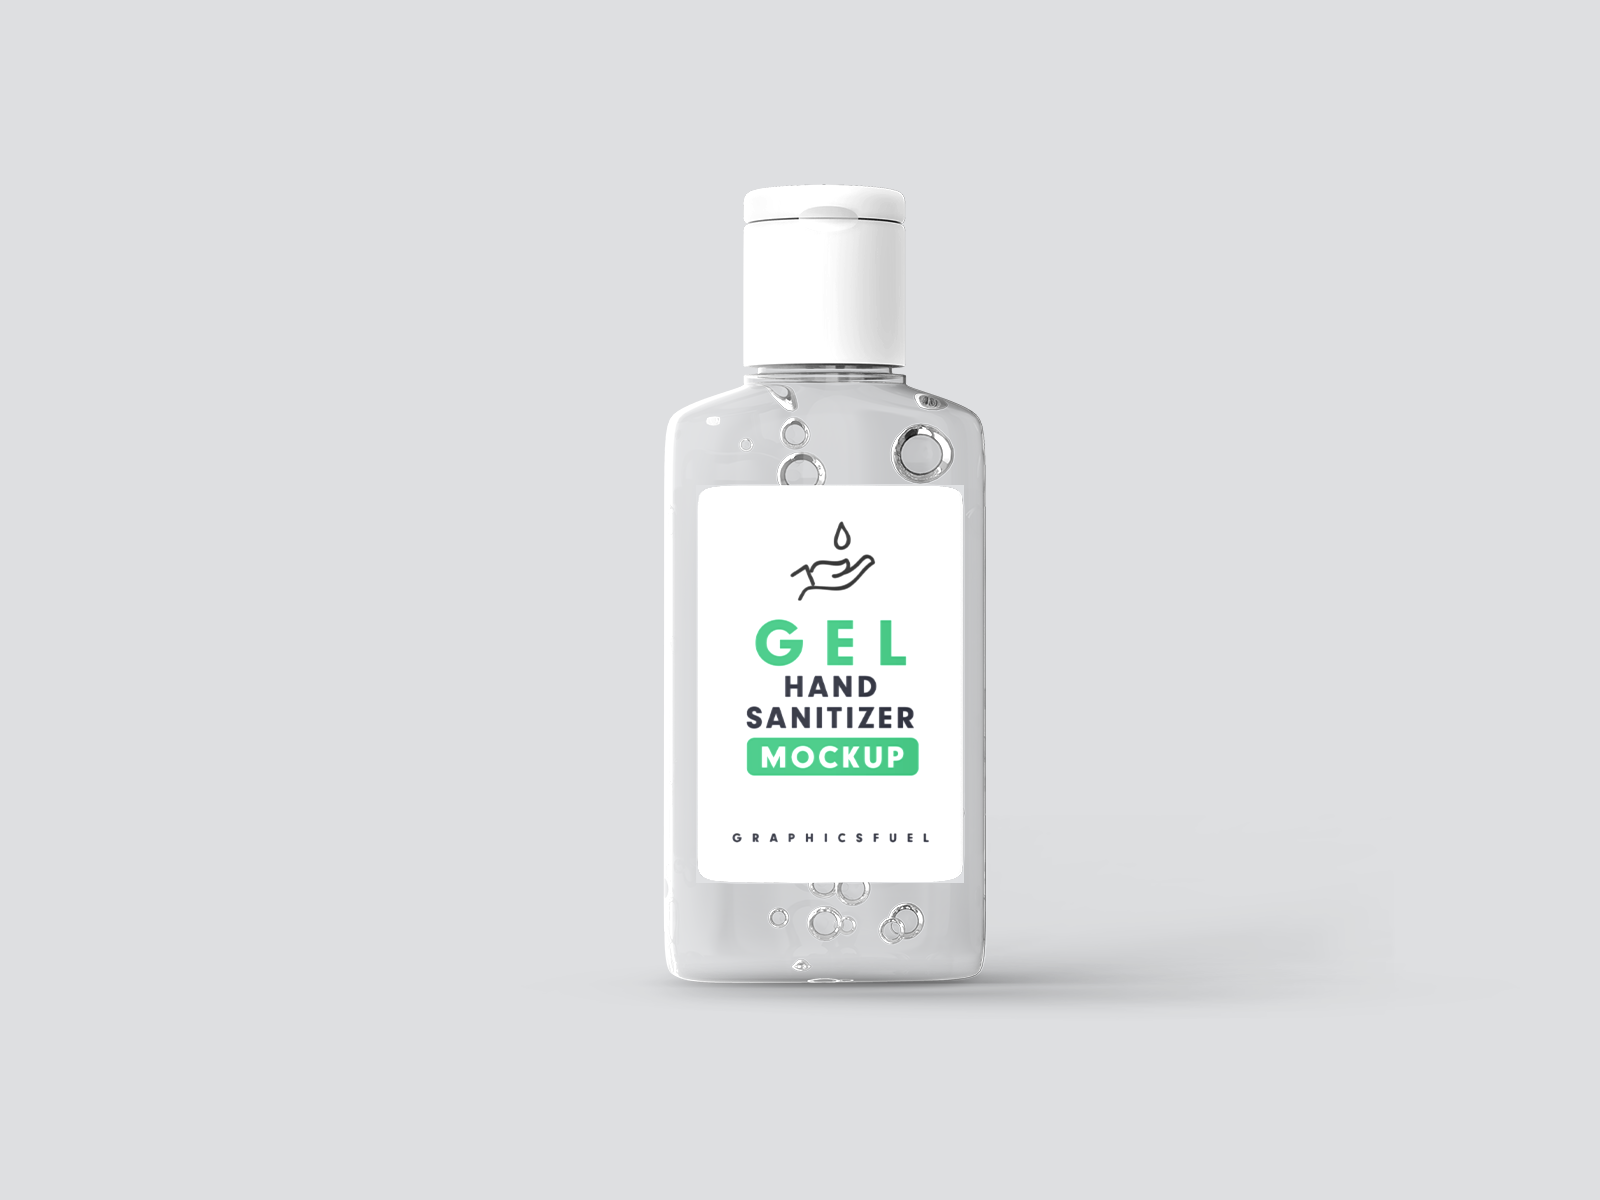 Free Hand Sanitizer Gel Bottle Mockup